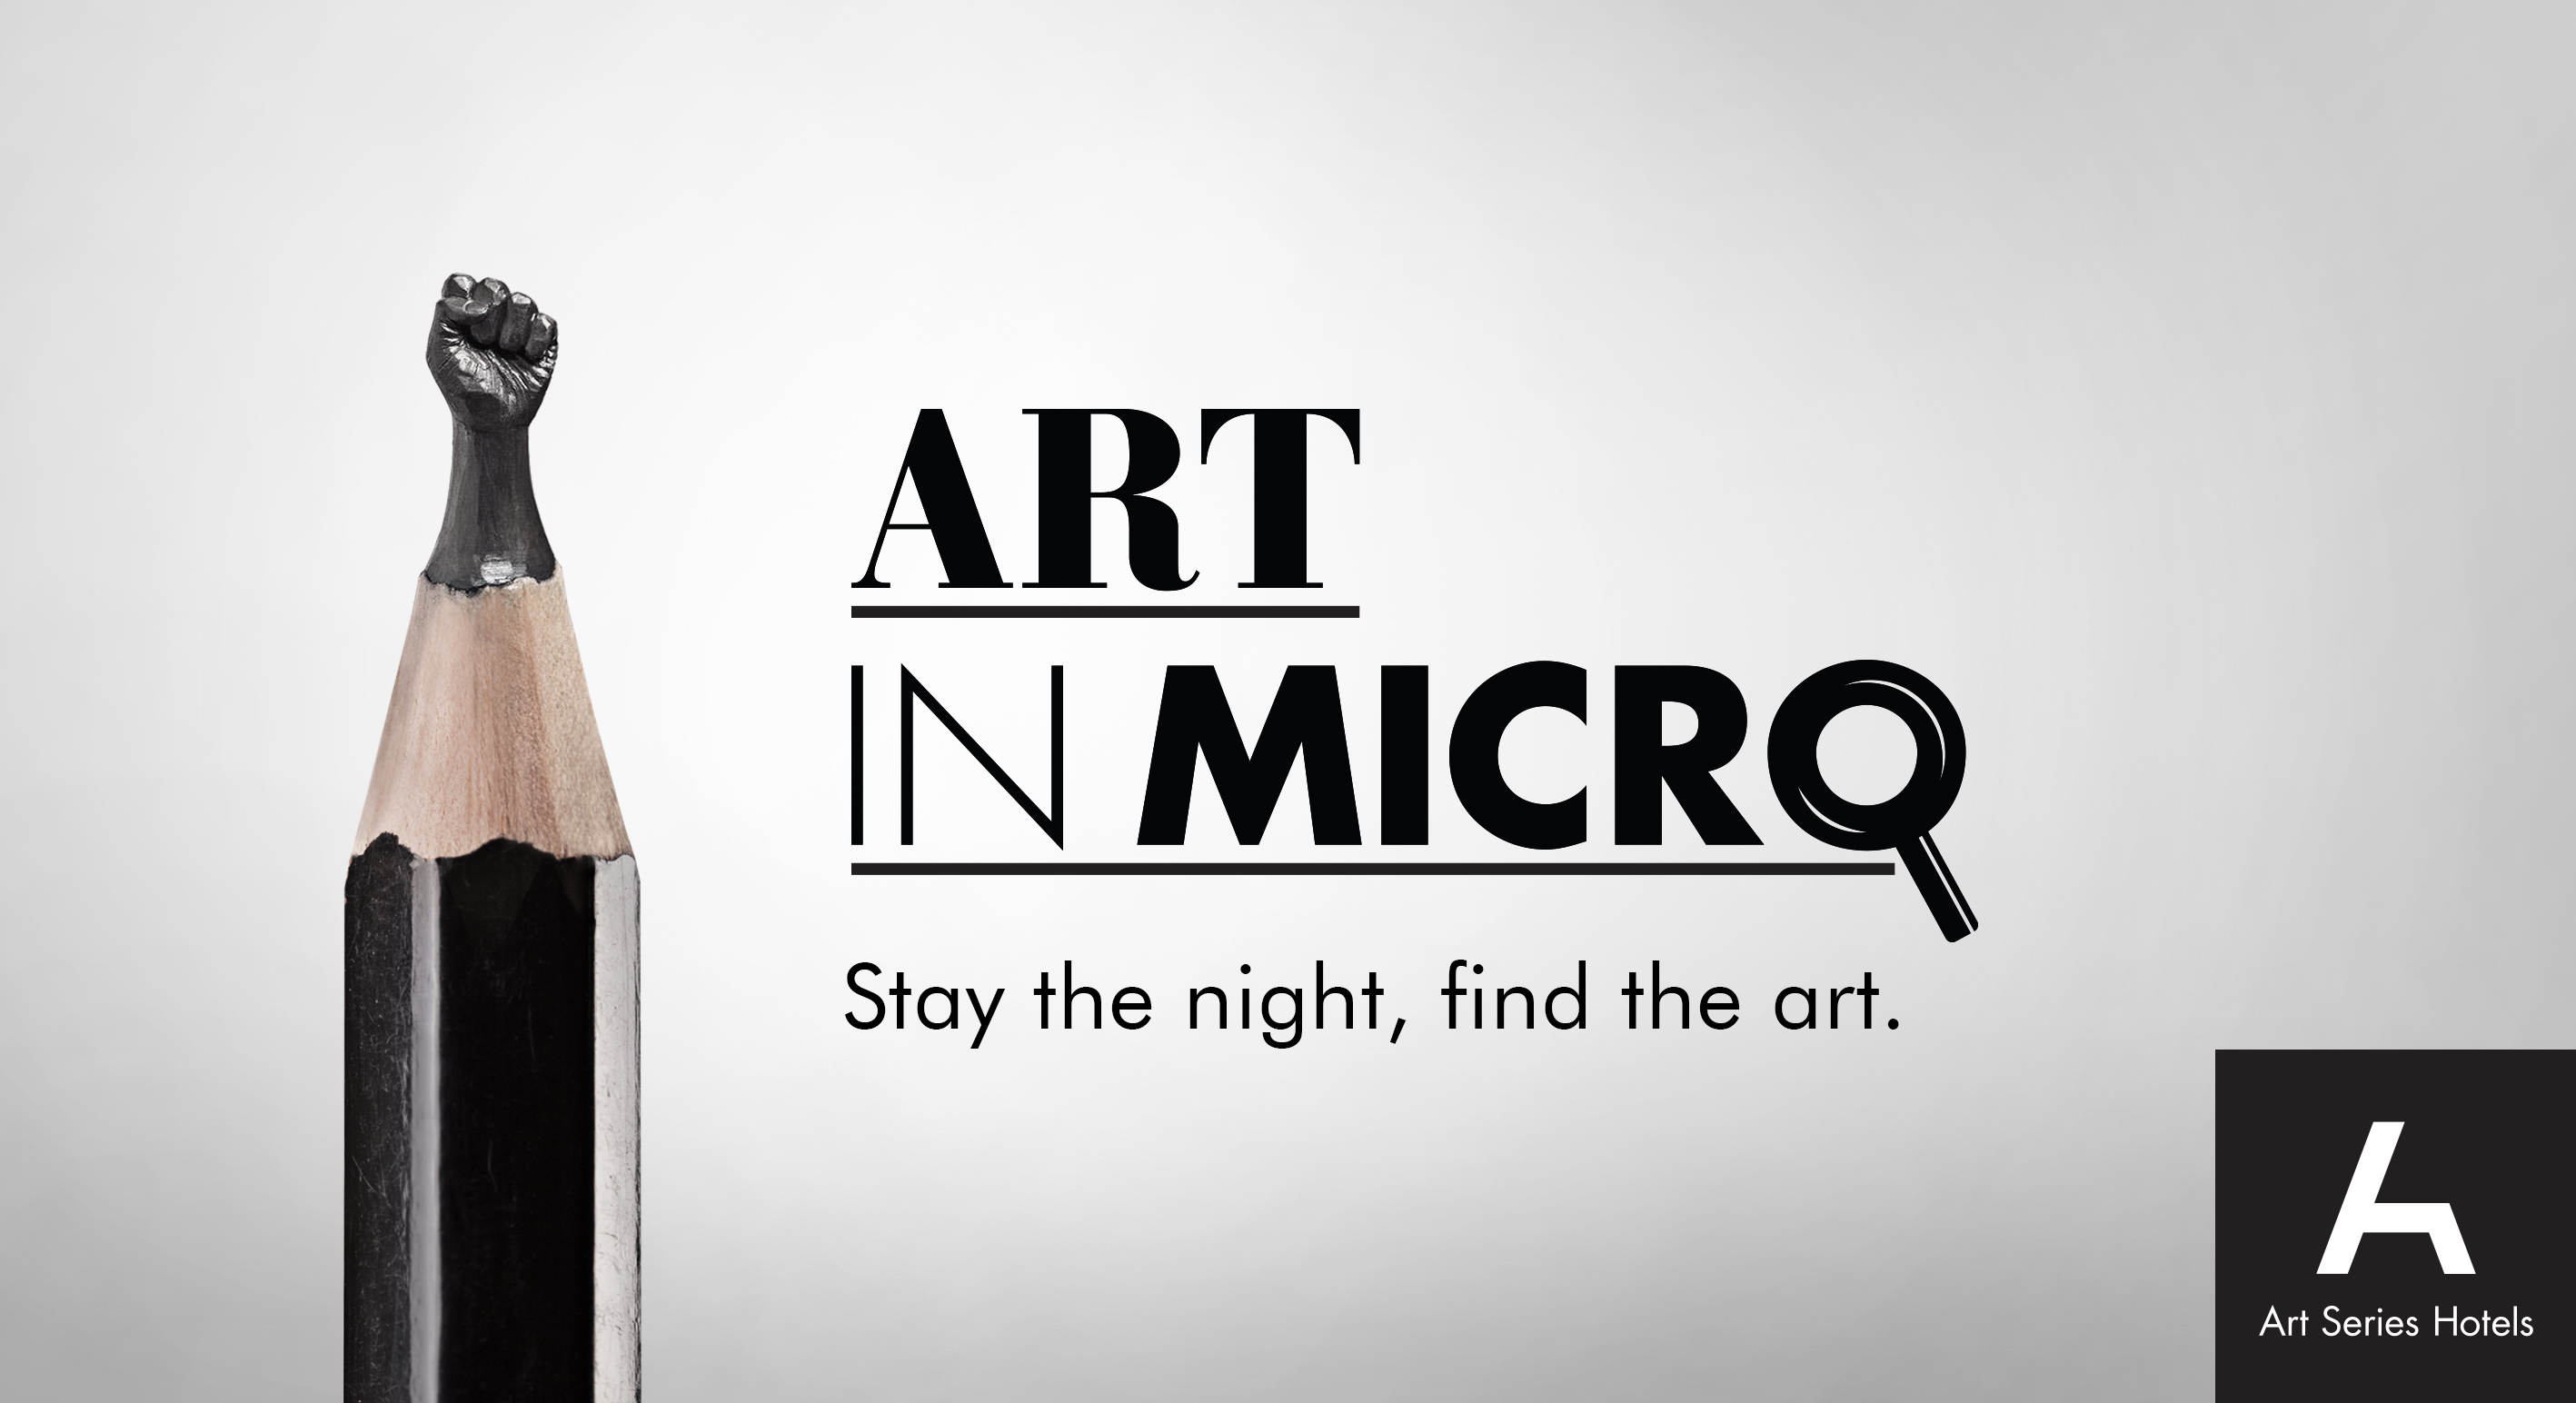 Art Series Hotels Launches 'Art in Micro' exhibition of micro art via Thinkerbell